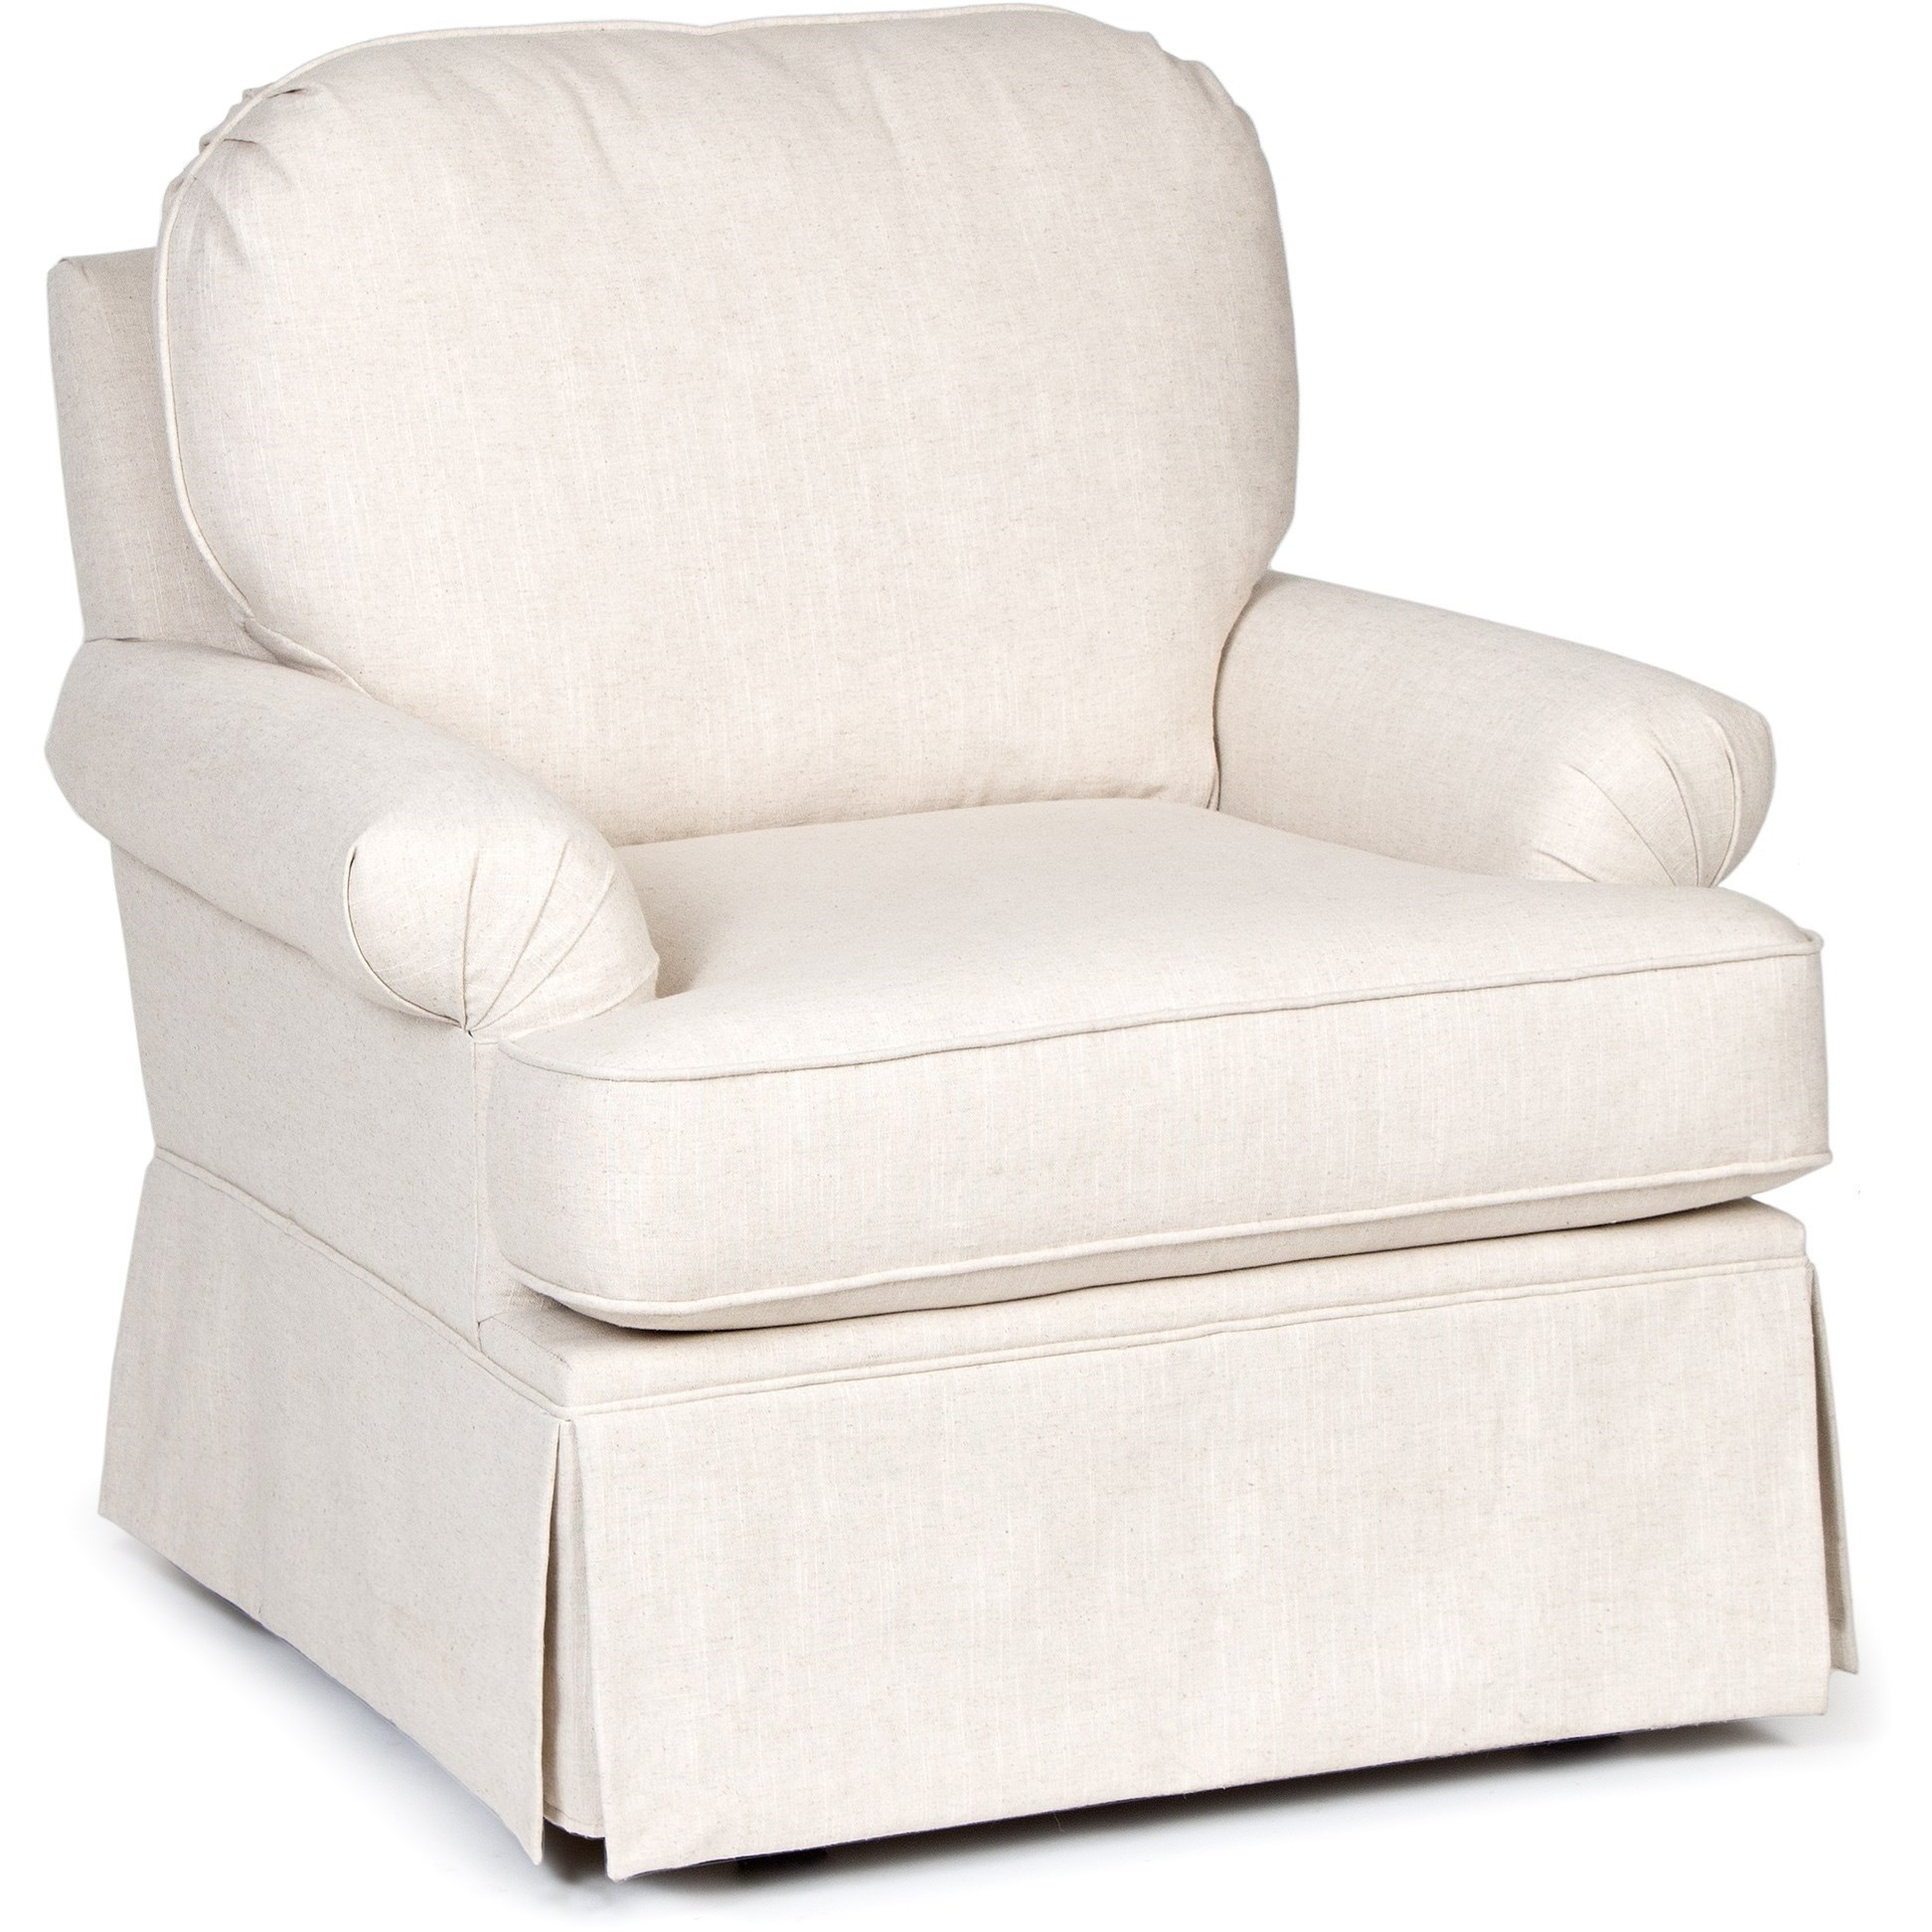 Chairs America Accent Chairs And Ottomans Swivel Glider With Skirted Intended For Harbor Grey Swivel Accent Chairs (Image 6 of 25)